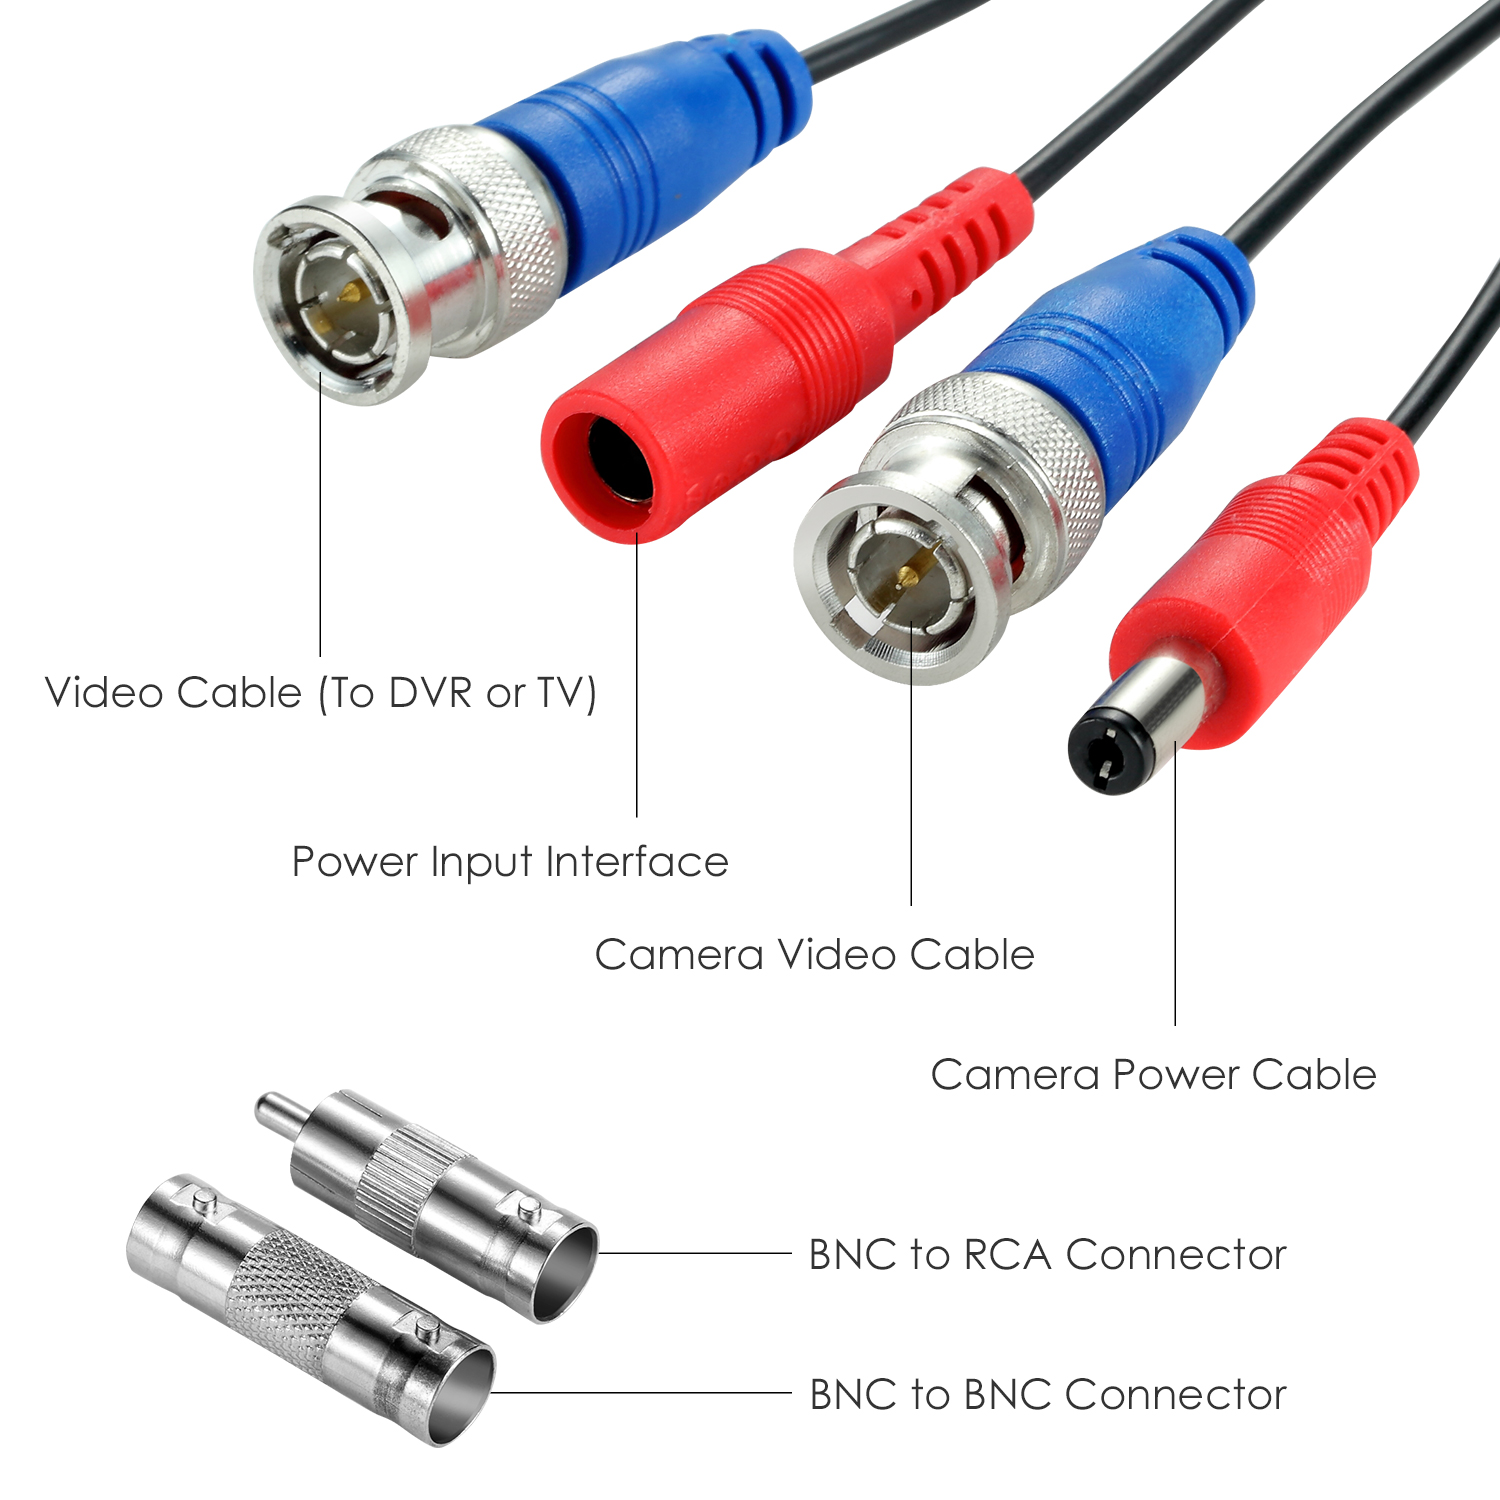 ZOSI 100ft BNC Power Video Cable 20m 30m Wire CCTV Camera system 1A 2A UK Power